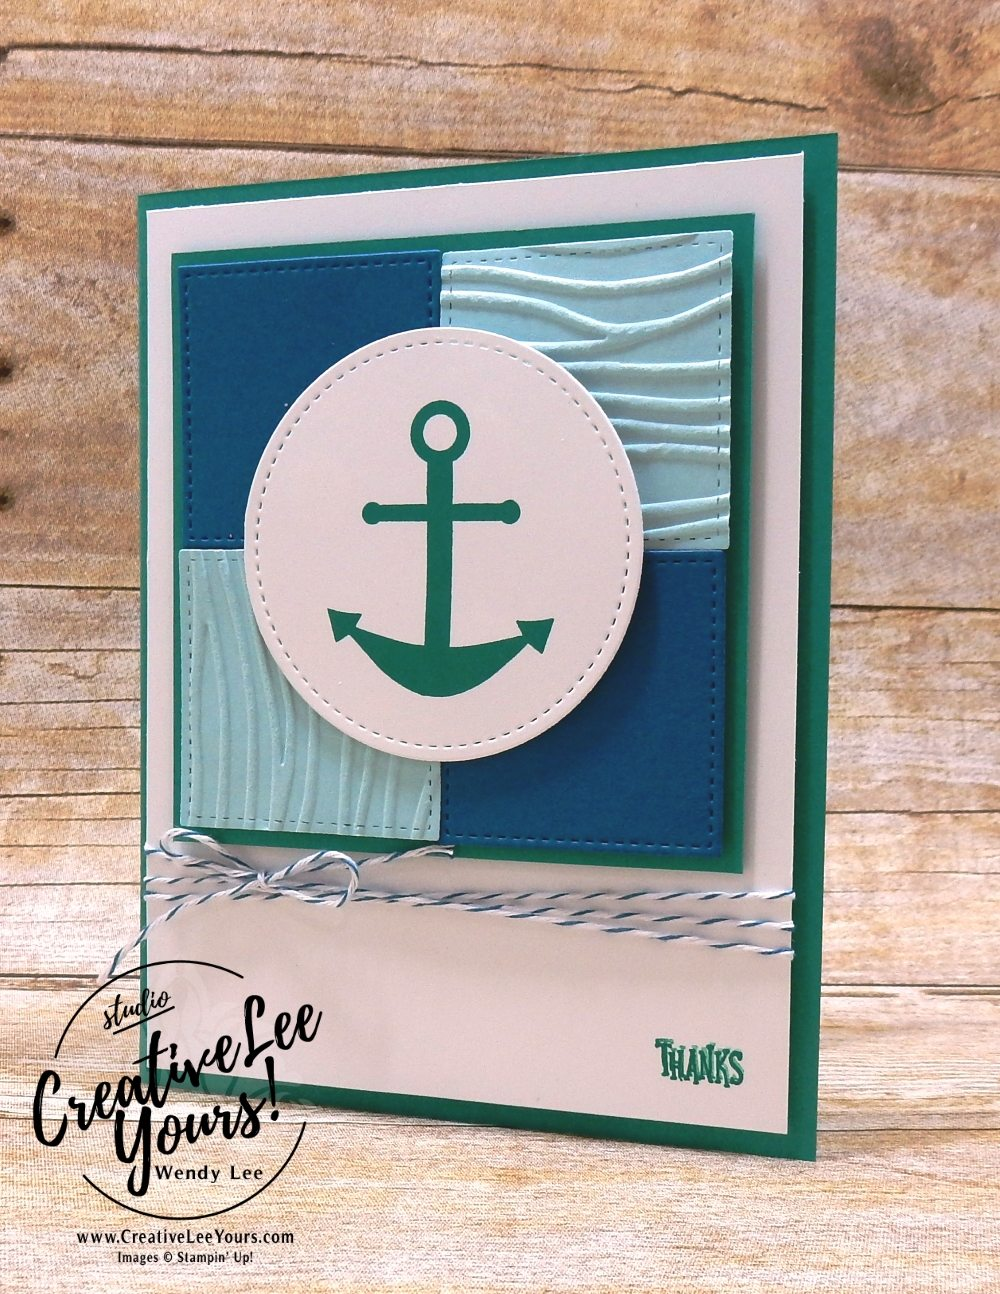 April 2018 You Are My Anchor Paper Pumpkin Kit by wendy lee, stampin up, handmade cards, rubber stamps, stamping, kit, subscription, nautical cards, thank you, congrats, friend, #creativeleeyours, creatively yours, creative-lee yours, SU, SU cards, masculine, May 2018 FMN class, BONUS card